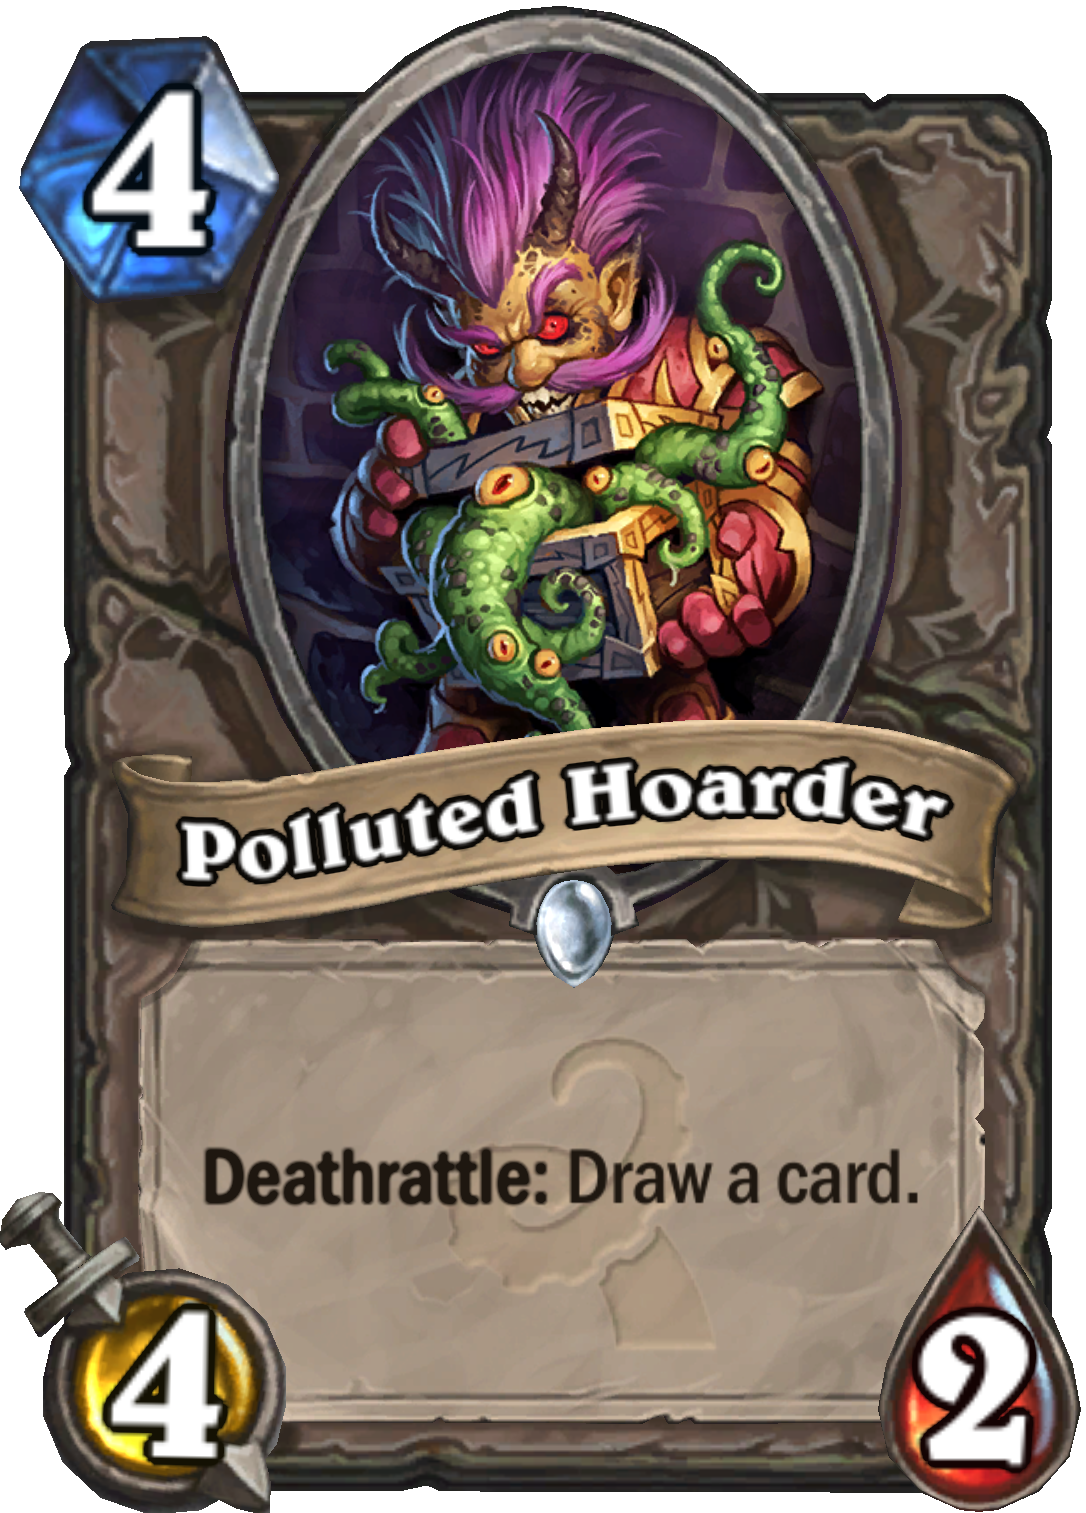 Polluted Hoarder Hearthstone card